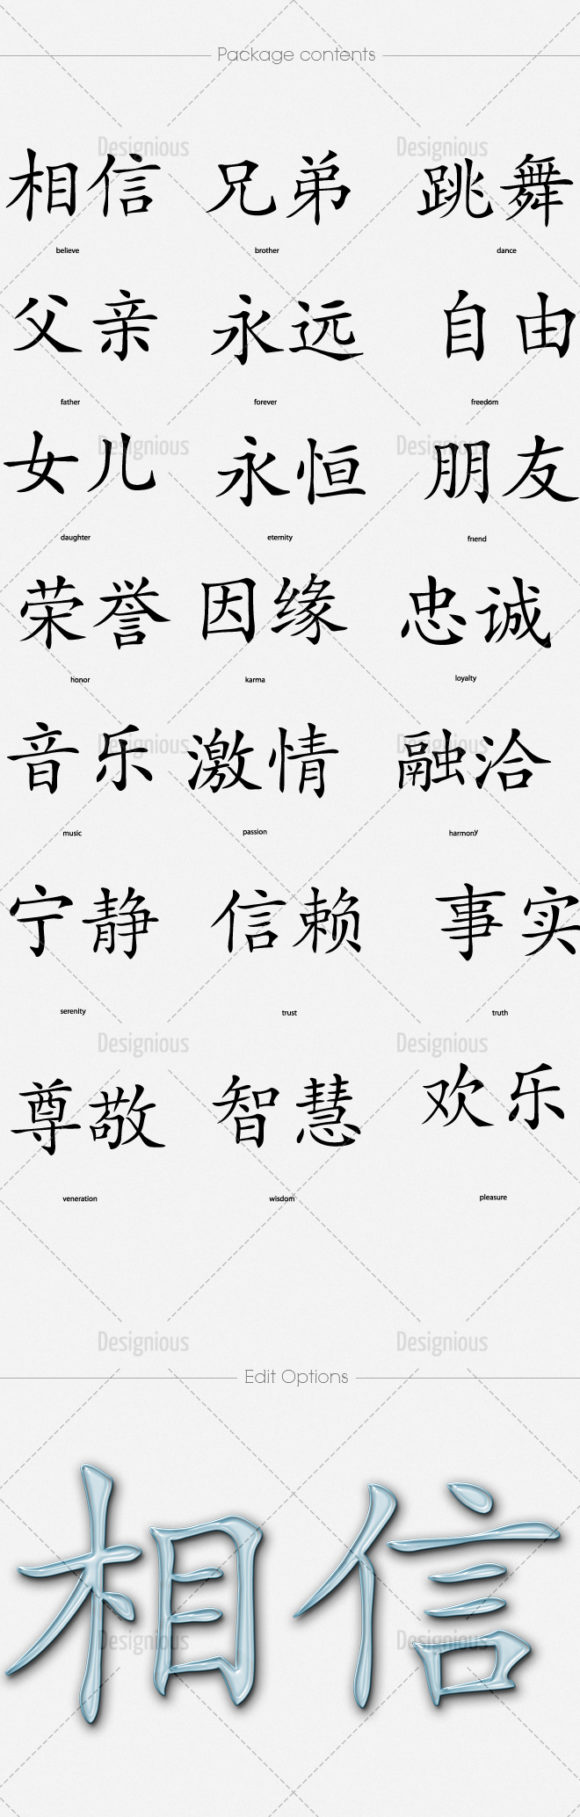 Chinese Glyphs Vector Pack 1 products designious chinese glyphs vector pack 1 large 1